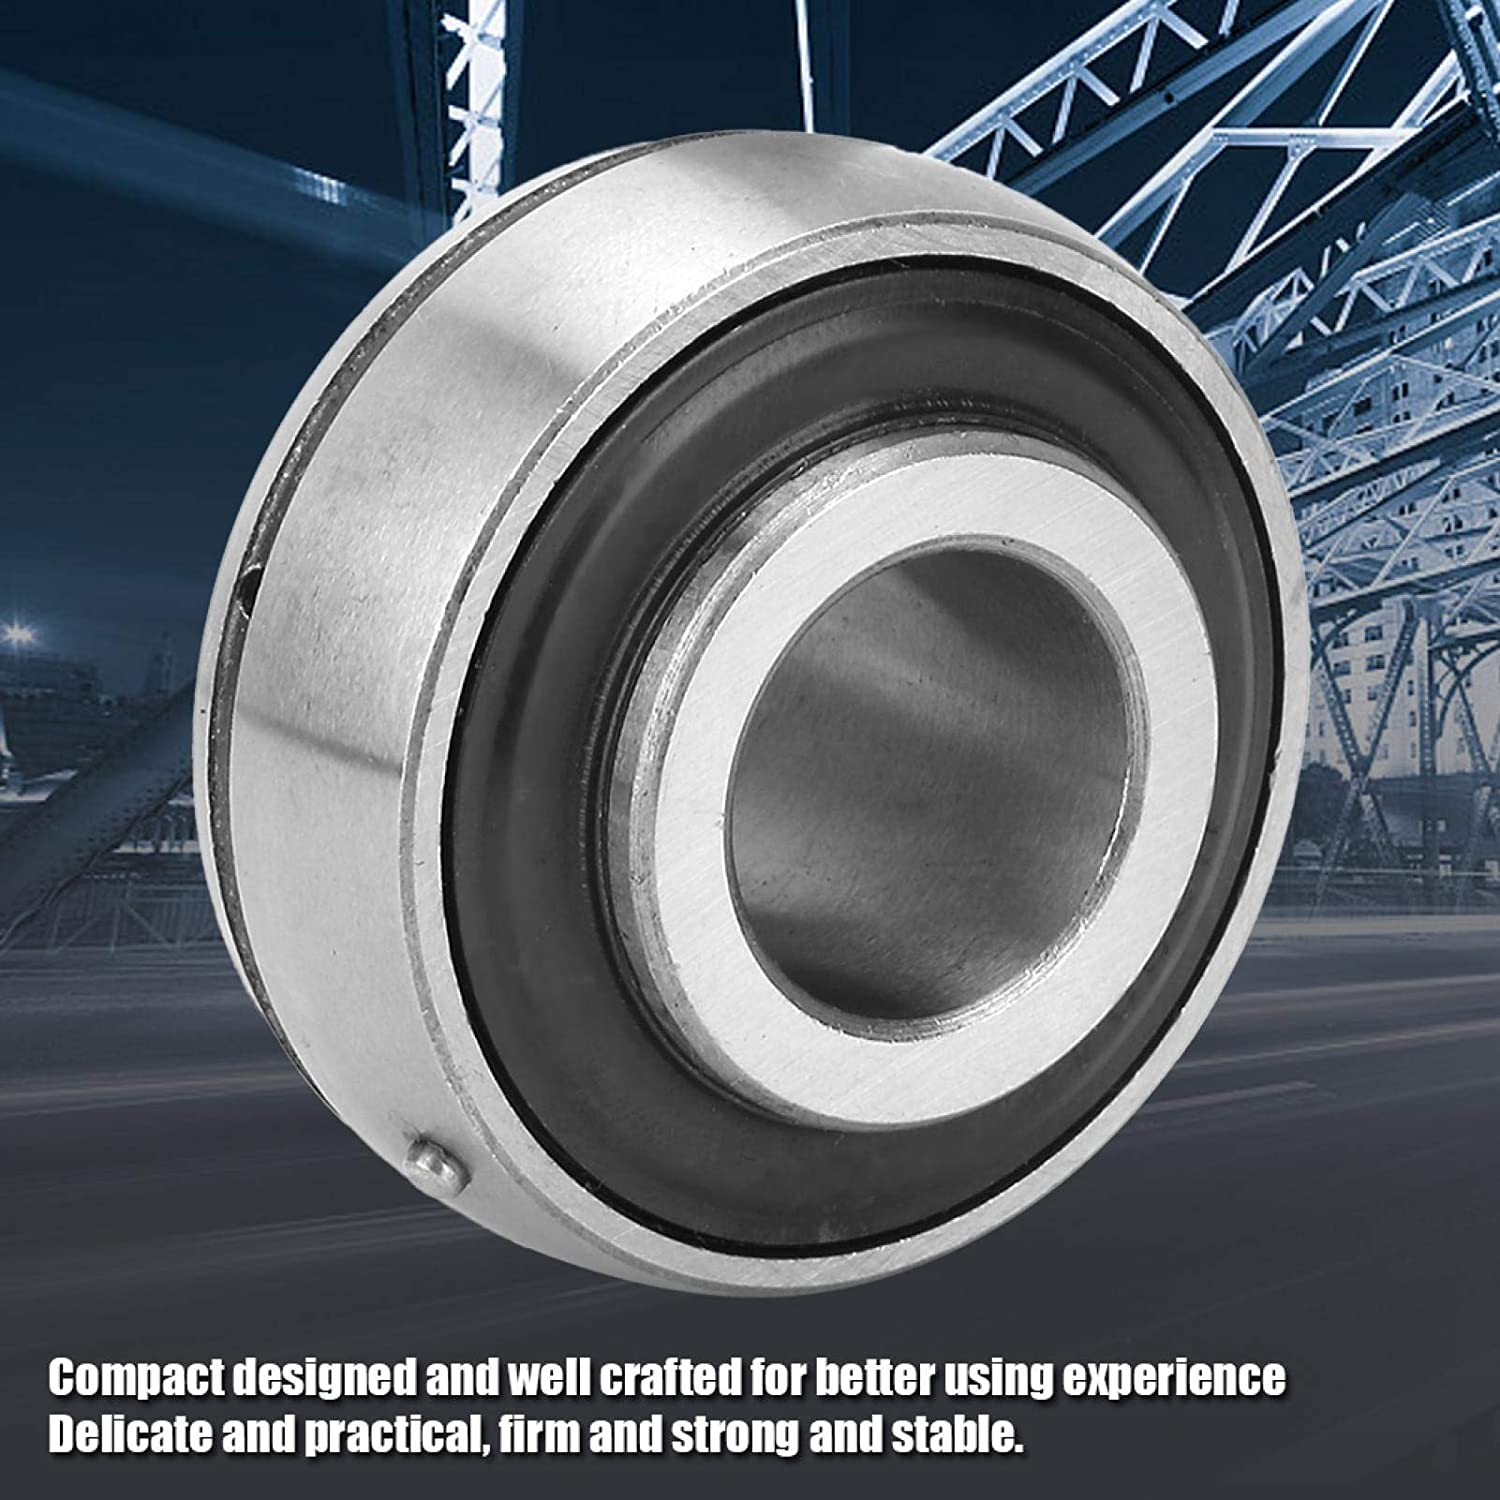 Spherical Bearings Easy to Install 5x52x34.1mm Seated Bearing Low Friction for Machine Manufacturing for conveyors UC205-16